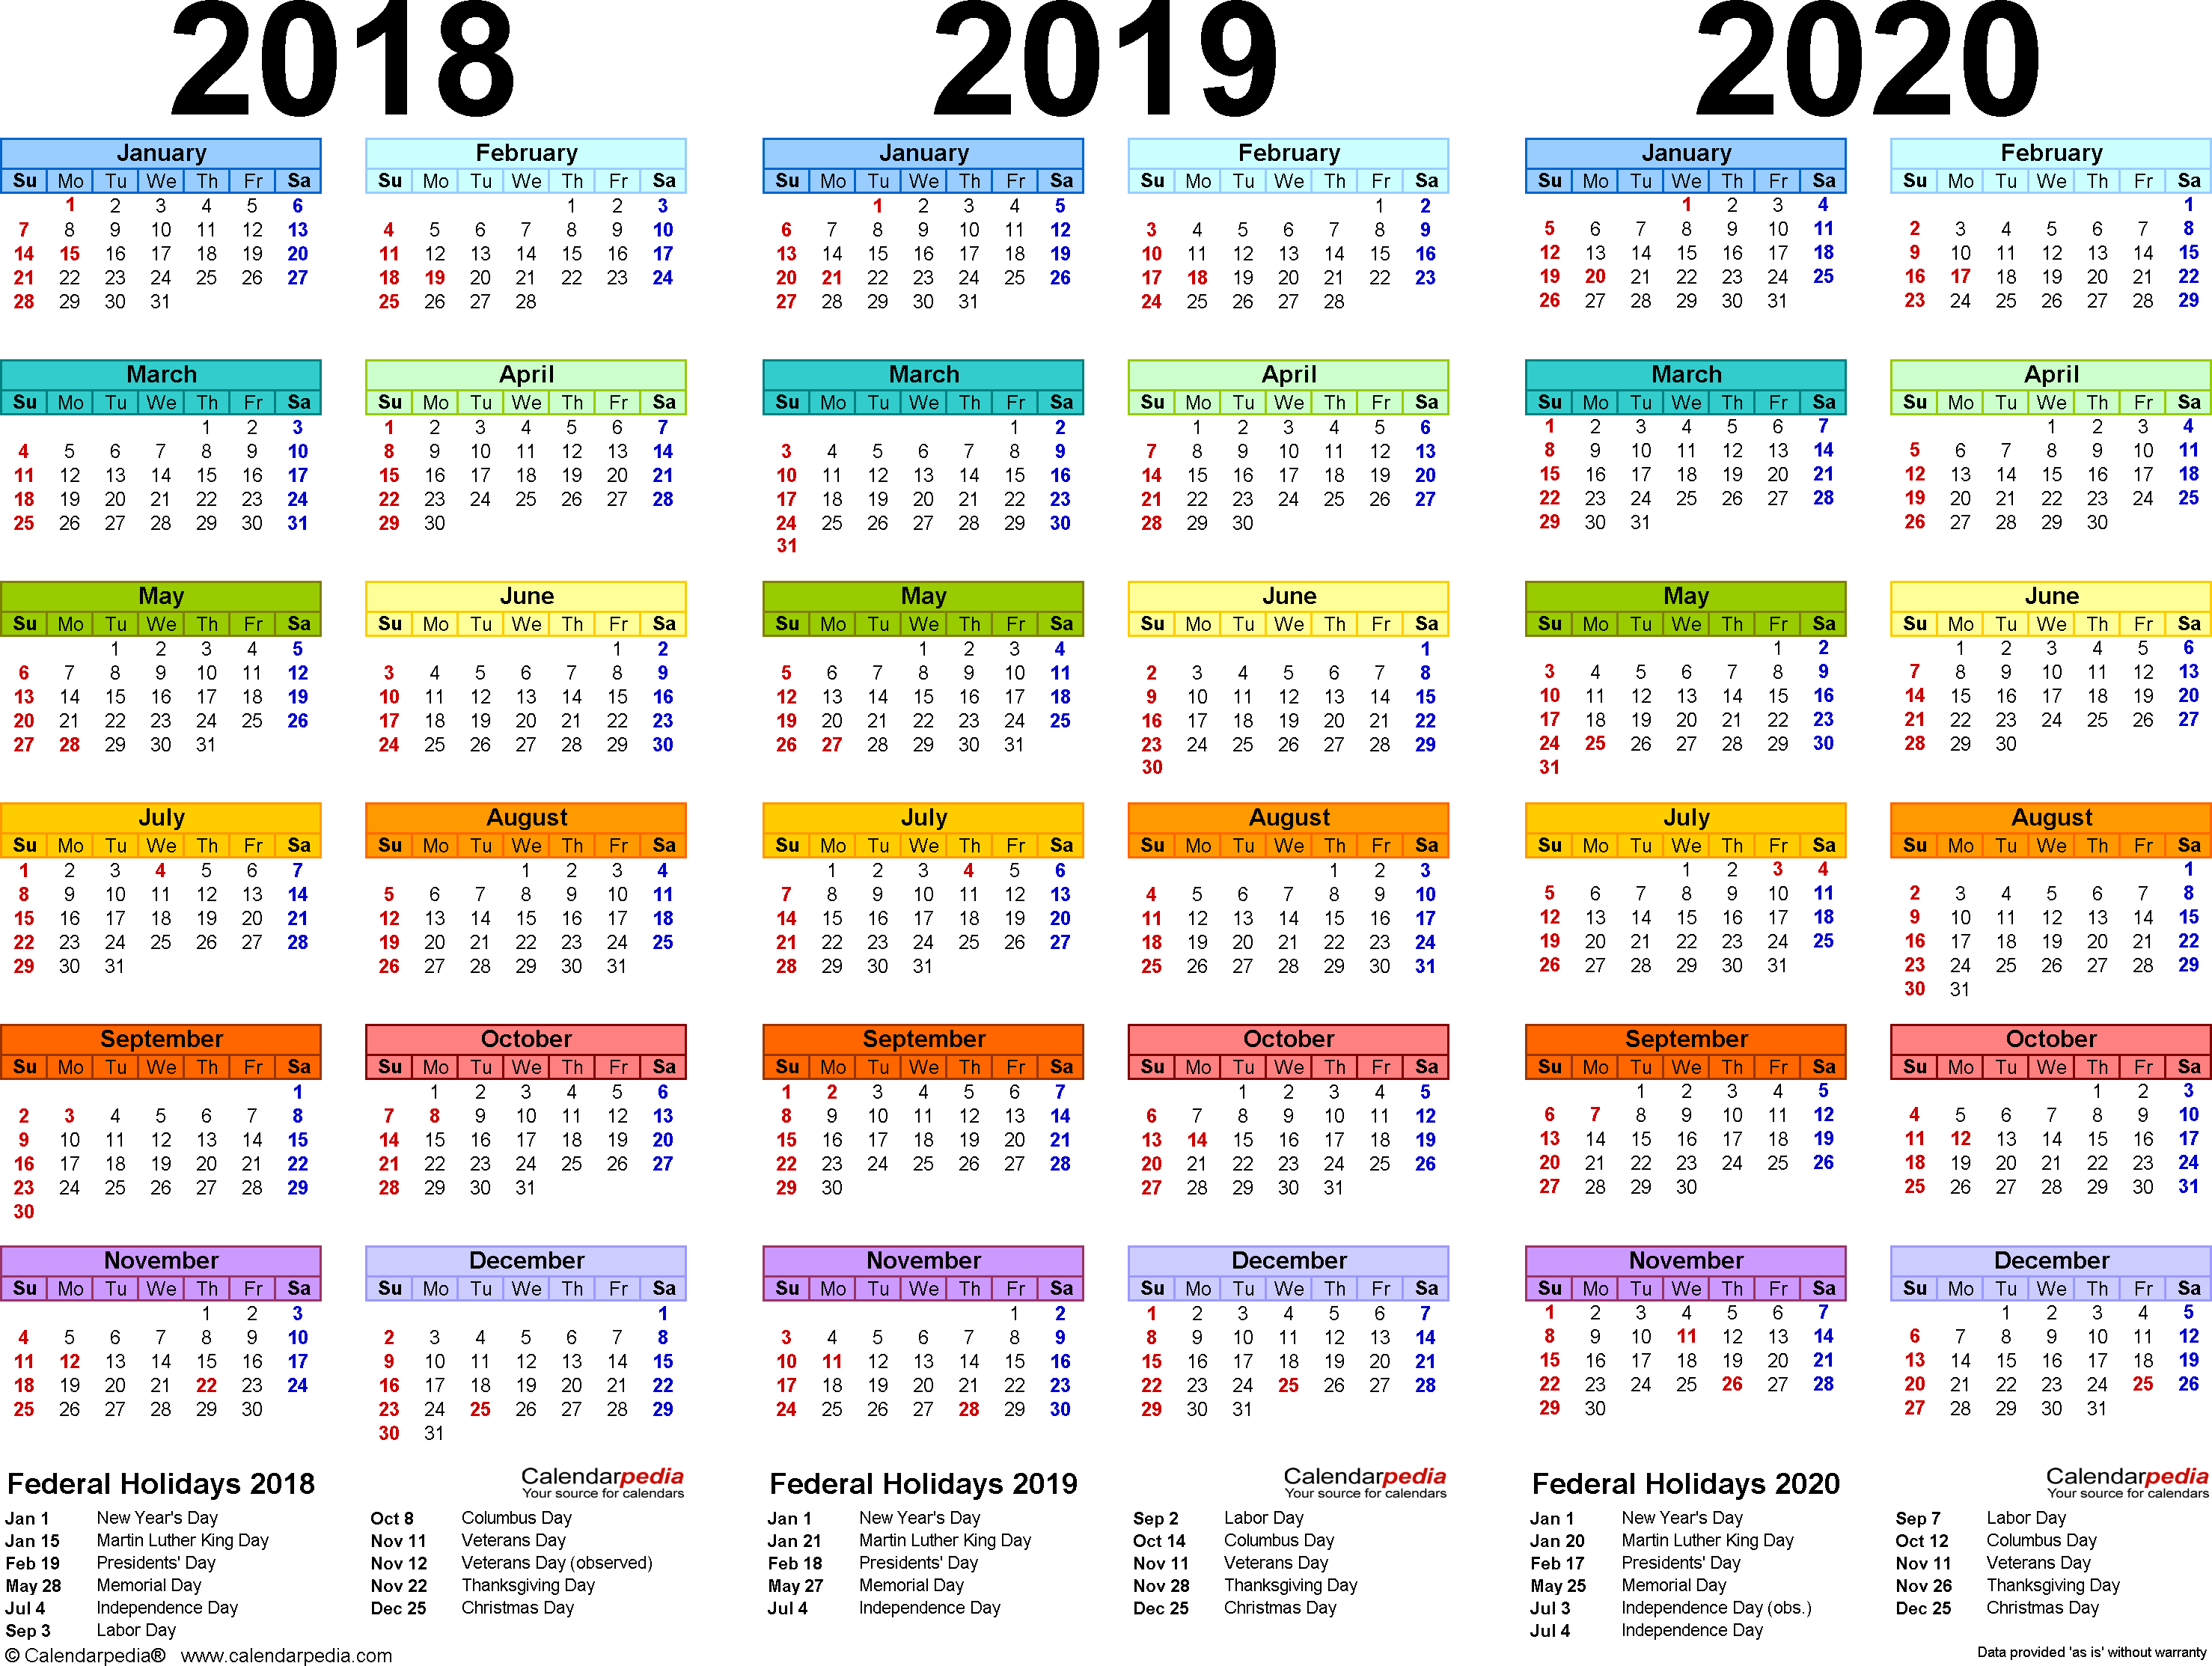 2019 Yearly Calendar - Free Download | Printables | Printable 2 Year Pocket Calendar 2019 And 2020